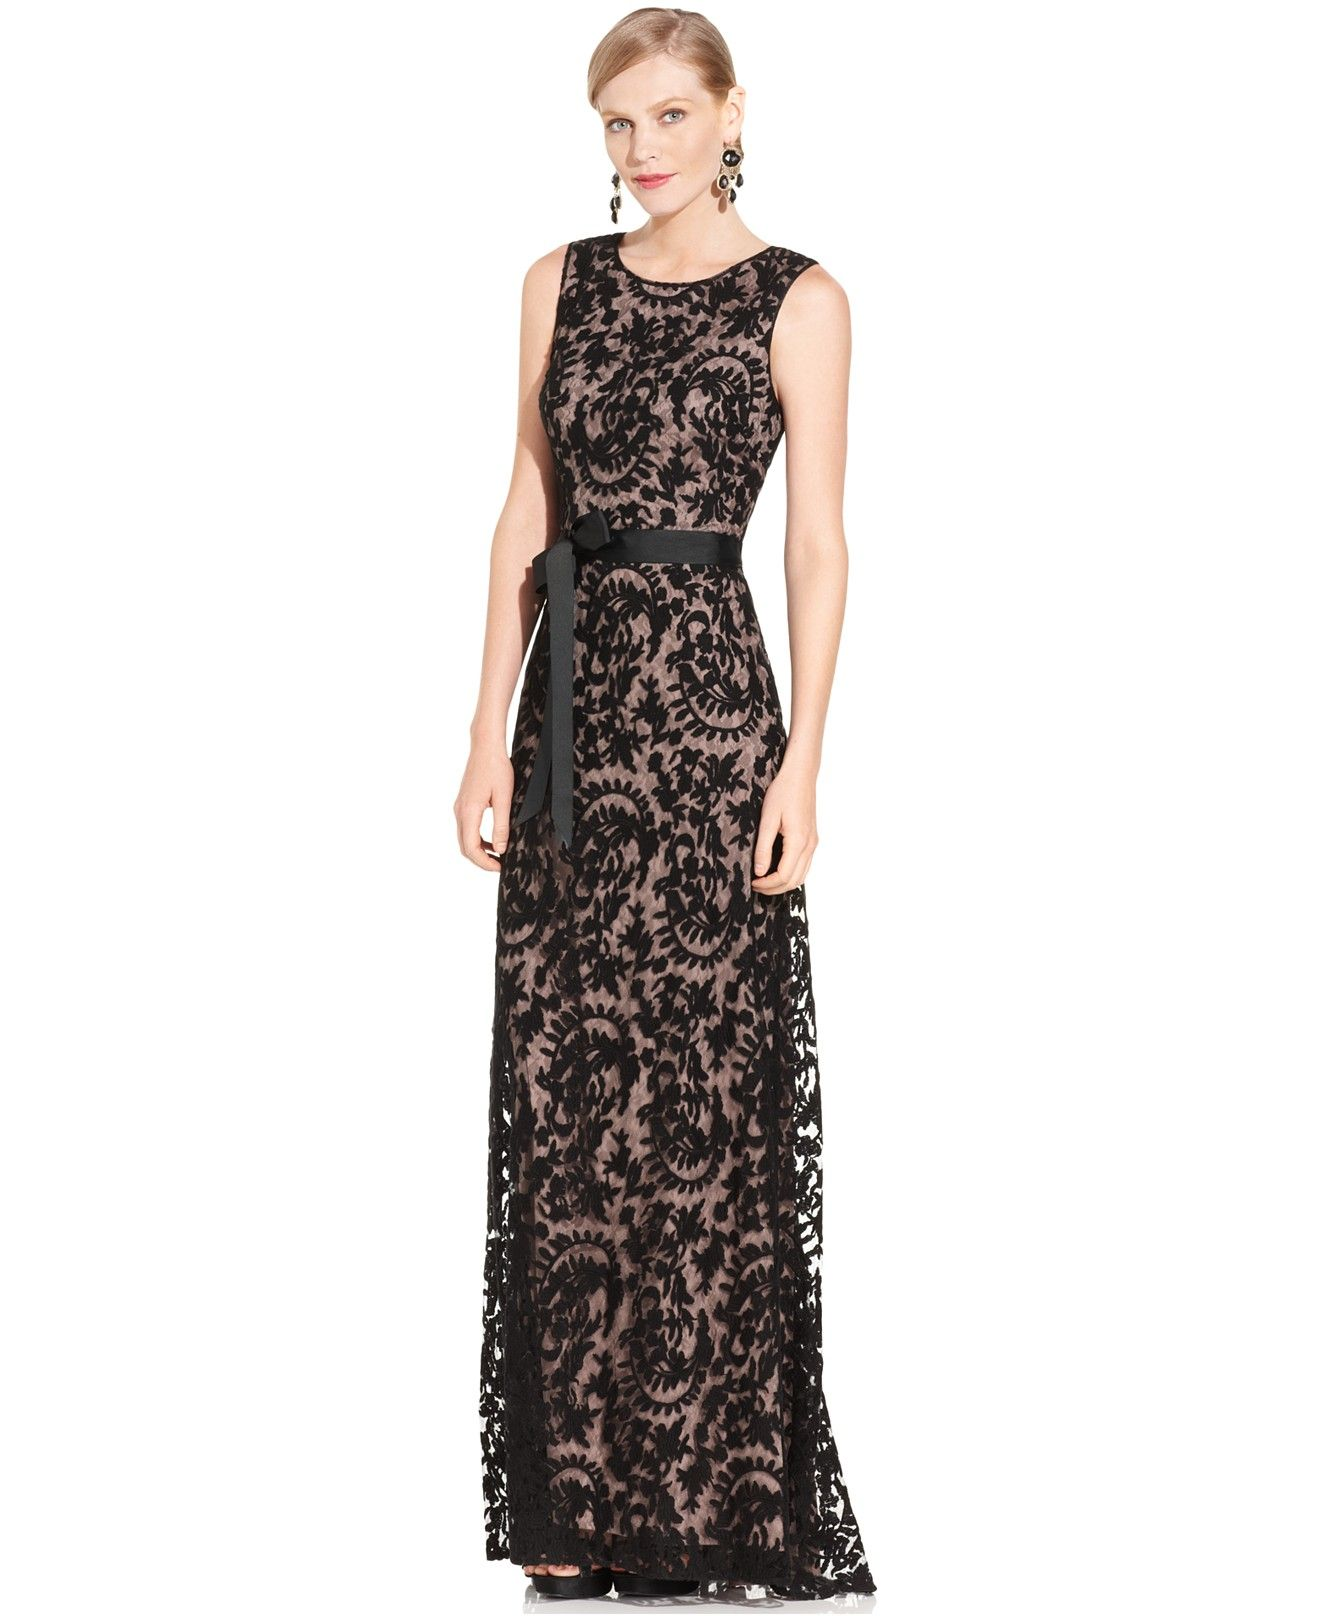 Adrianna Papell Petite Sleeveless Lace Gown - Dresses - Women ...